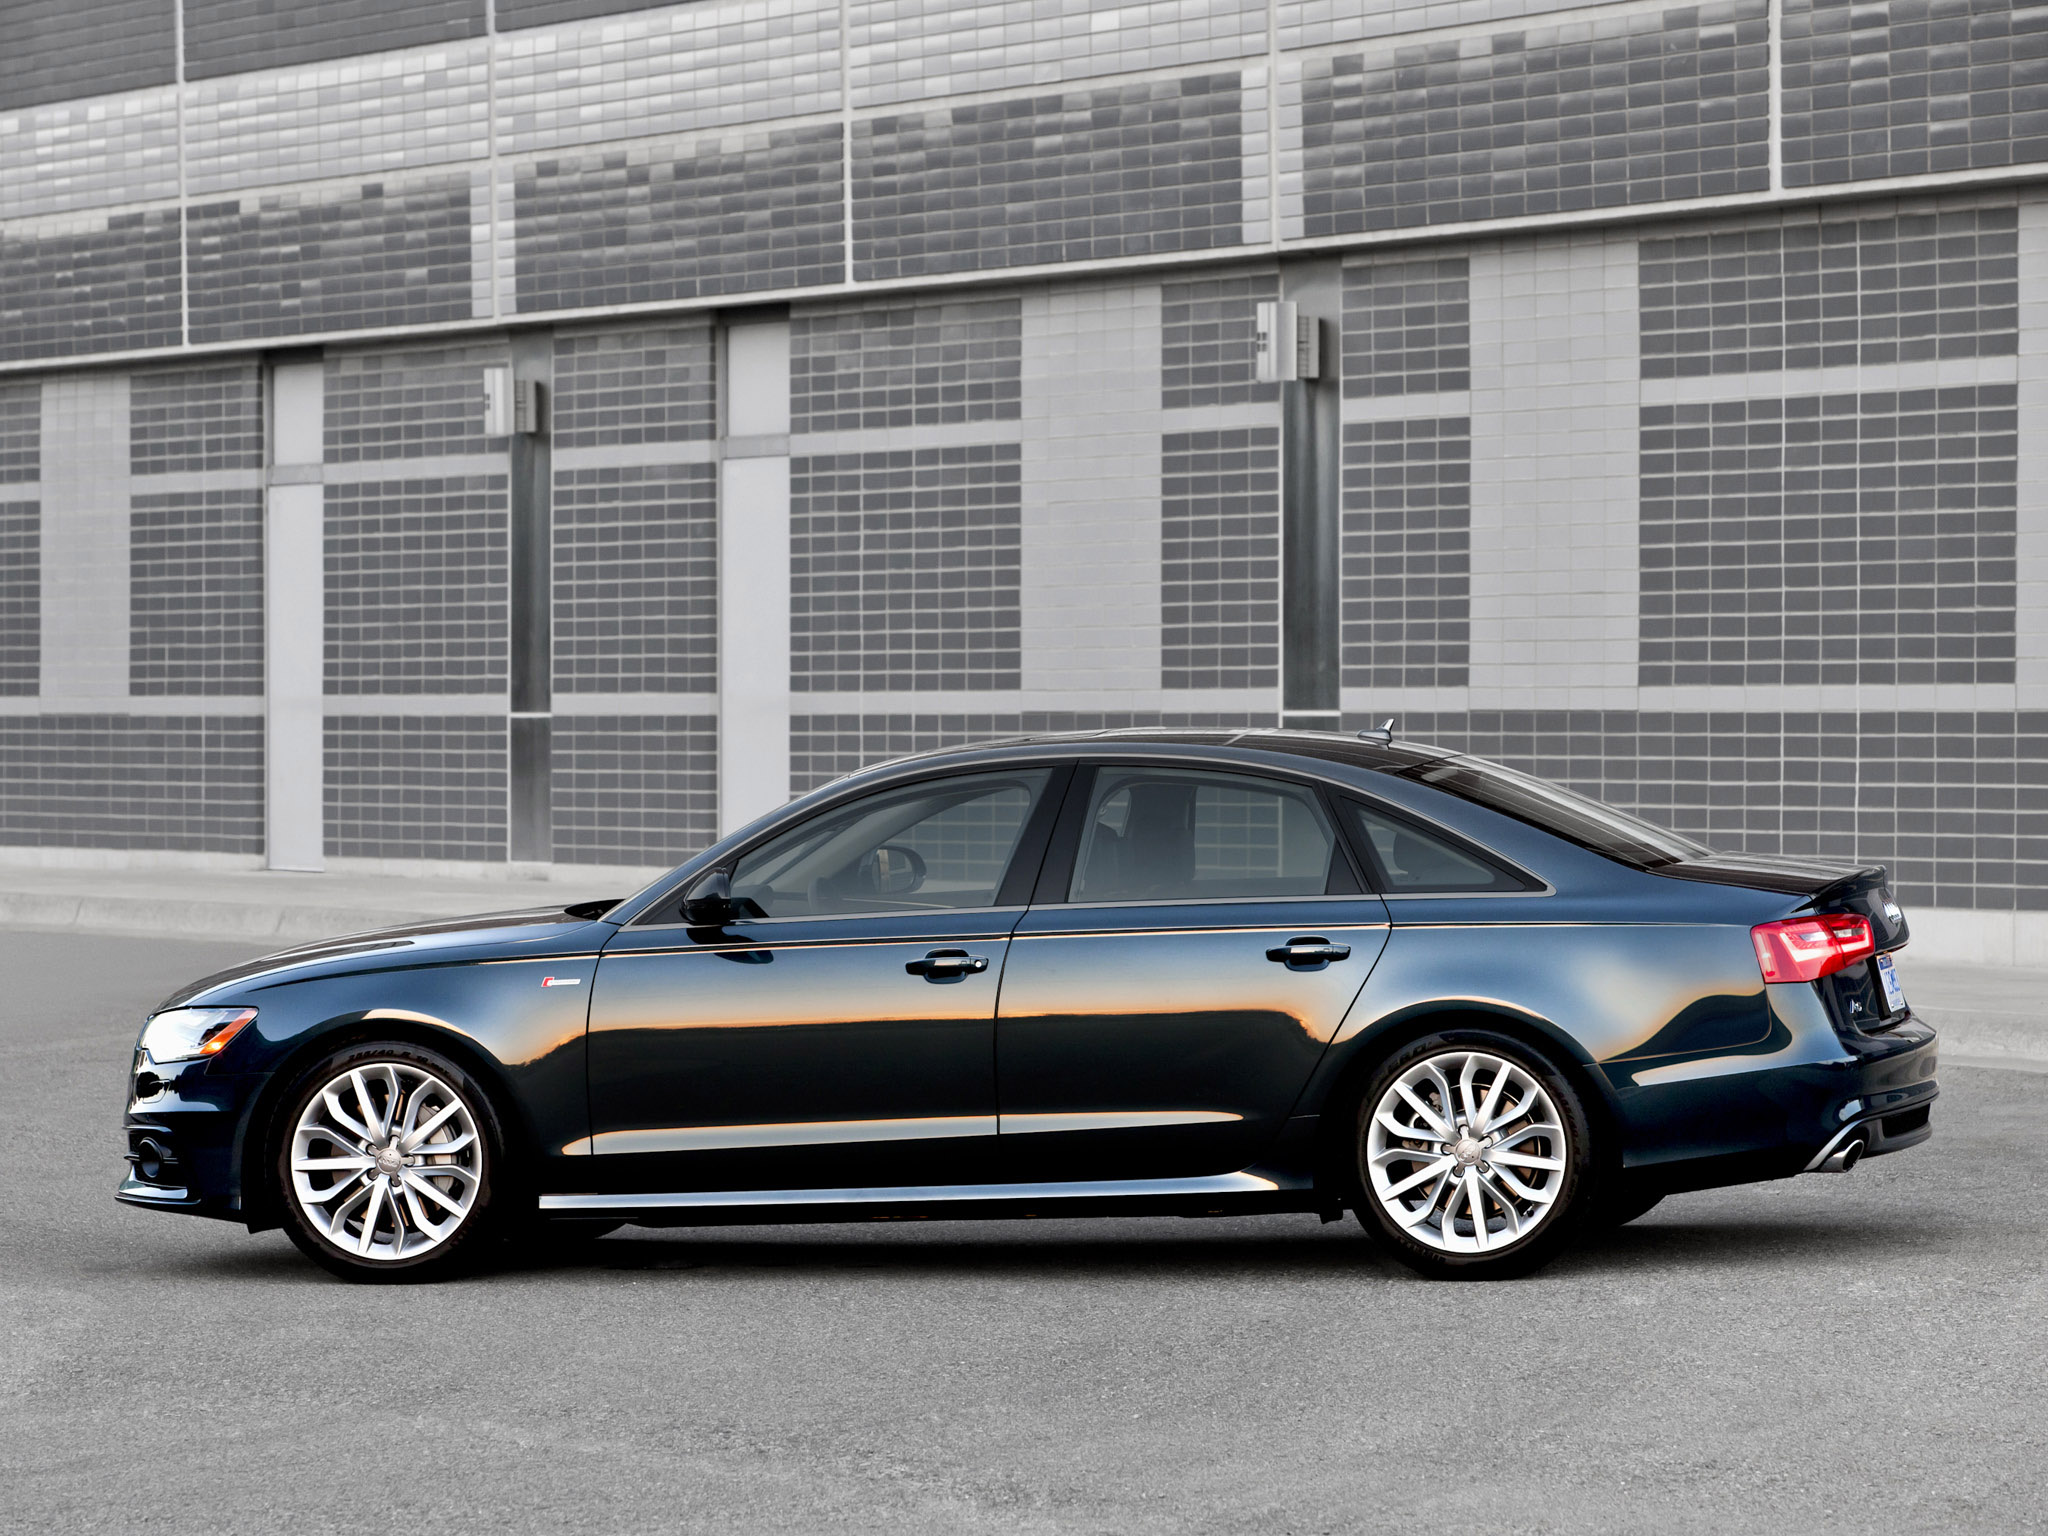 audi a6 3 0t s line sedan usa 2011 audi a6 3 0t s line. Black Bedroom Furniture Sets. Home Design Ideas